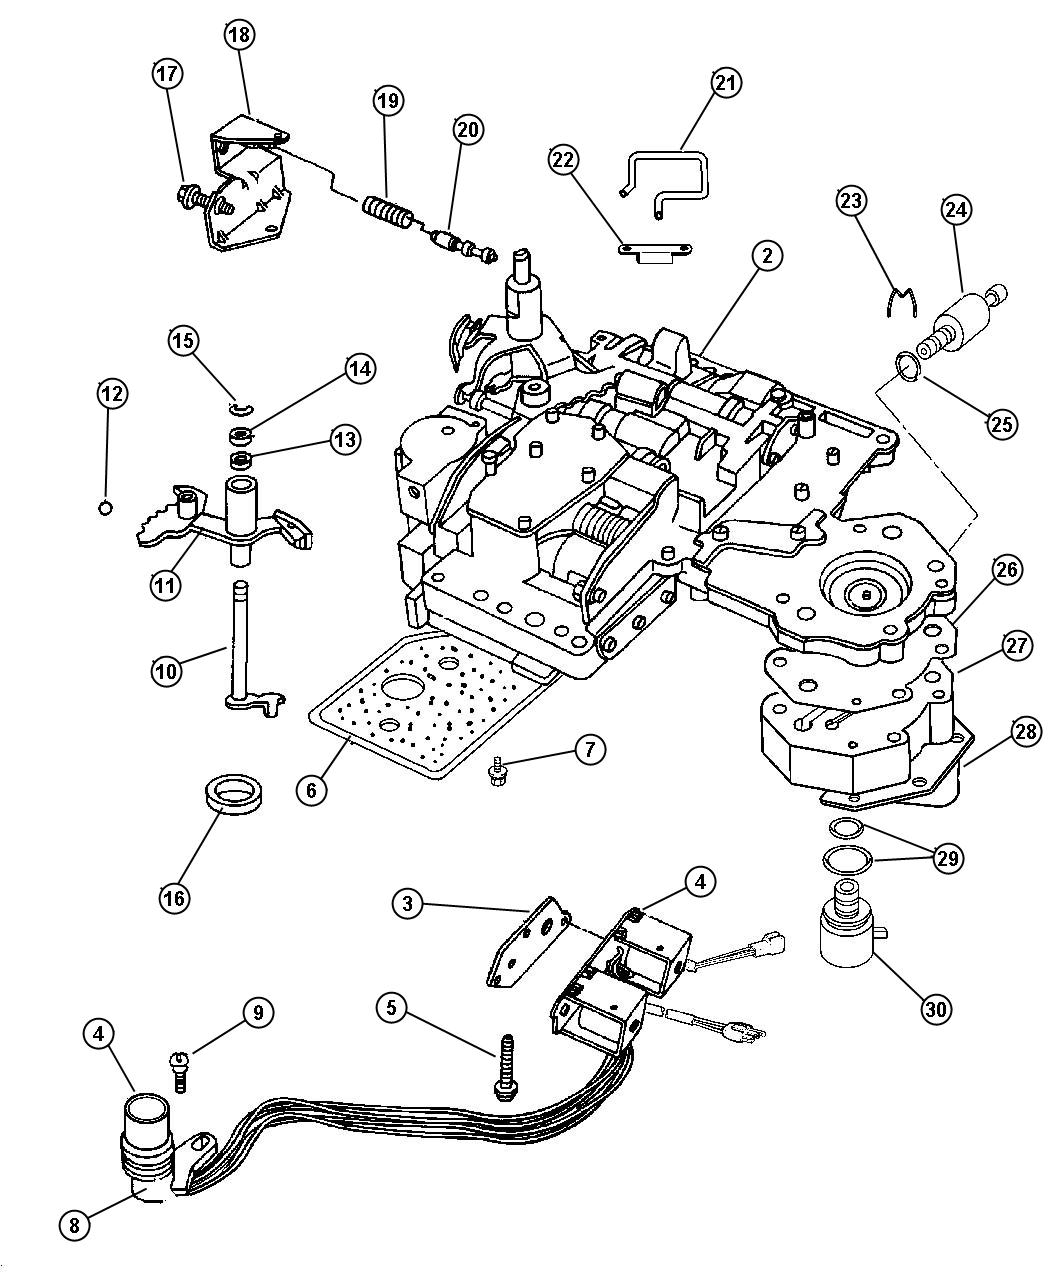 2000 Chevy S10 Tail Light Wiring Diagram 2002 Chevy Venture Tail Light